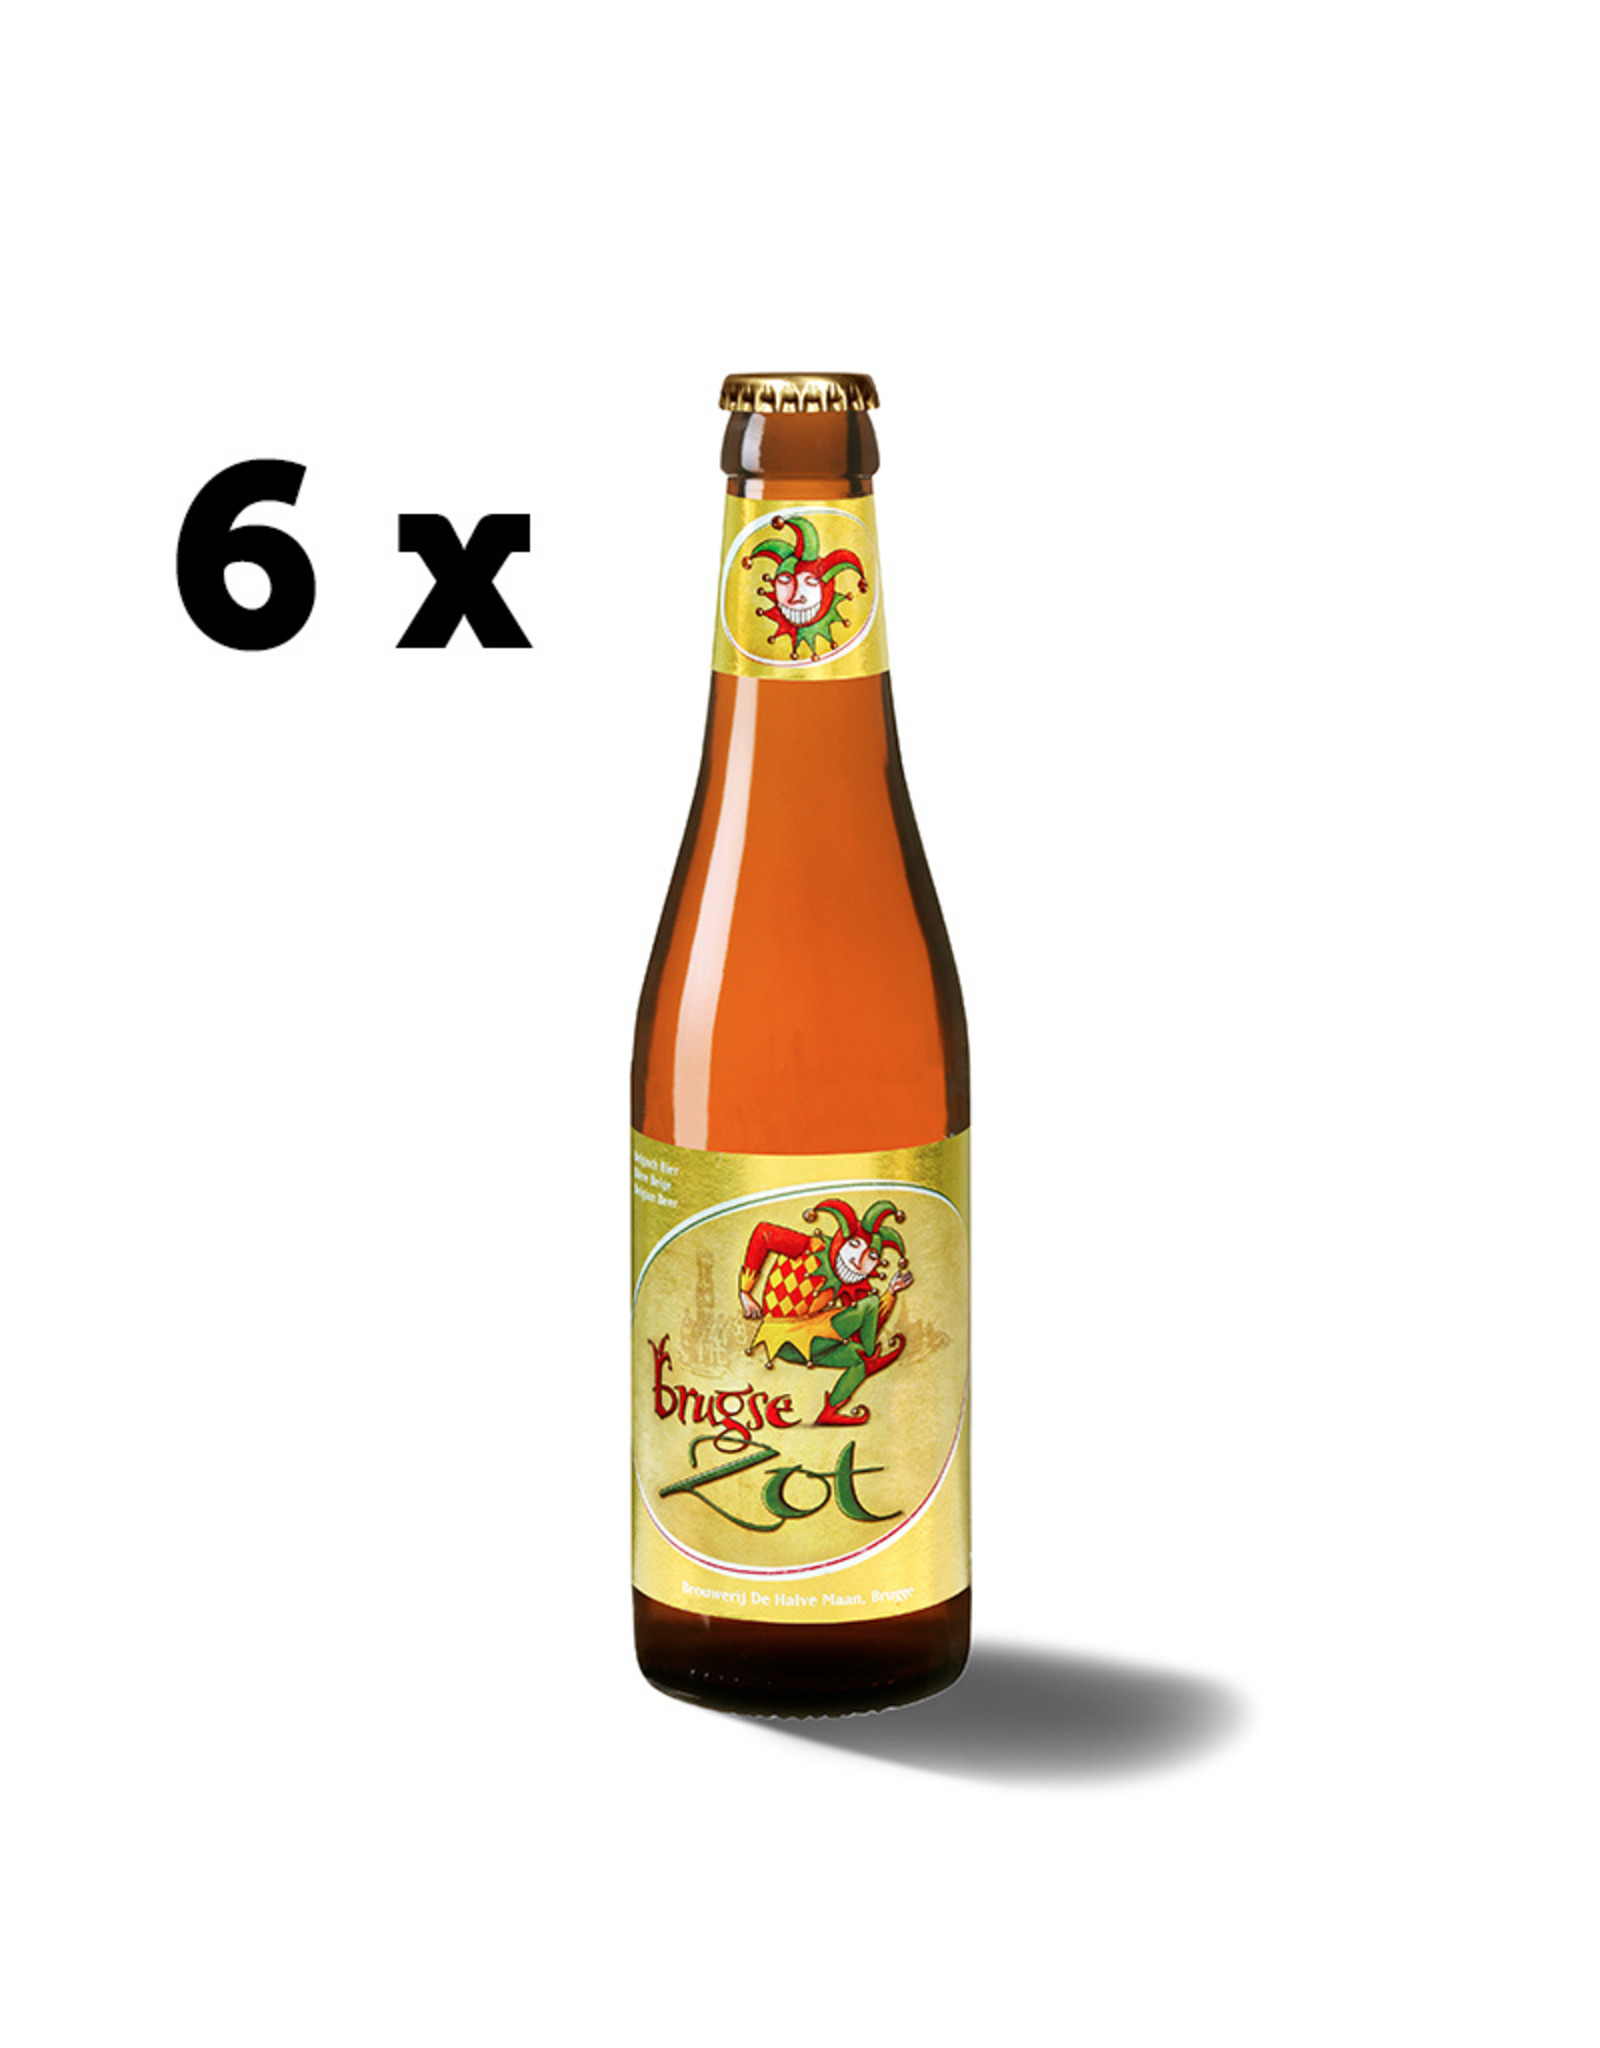 Brugse Zot blond sixpack